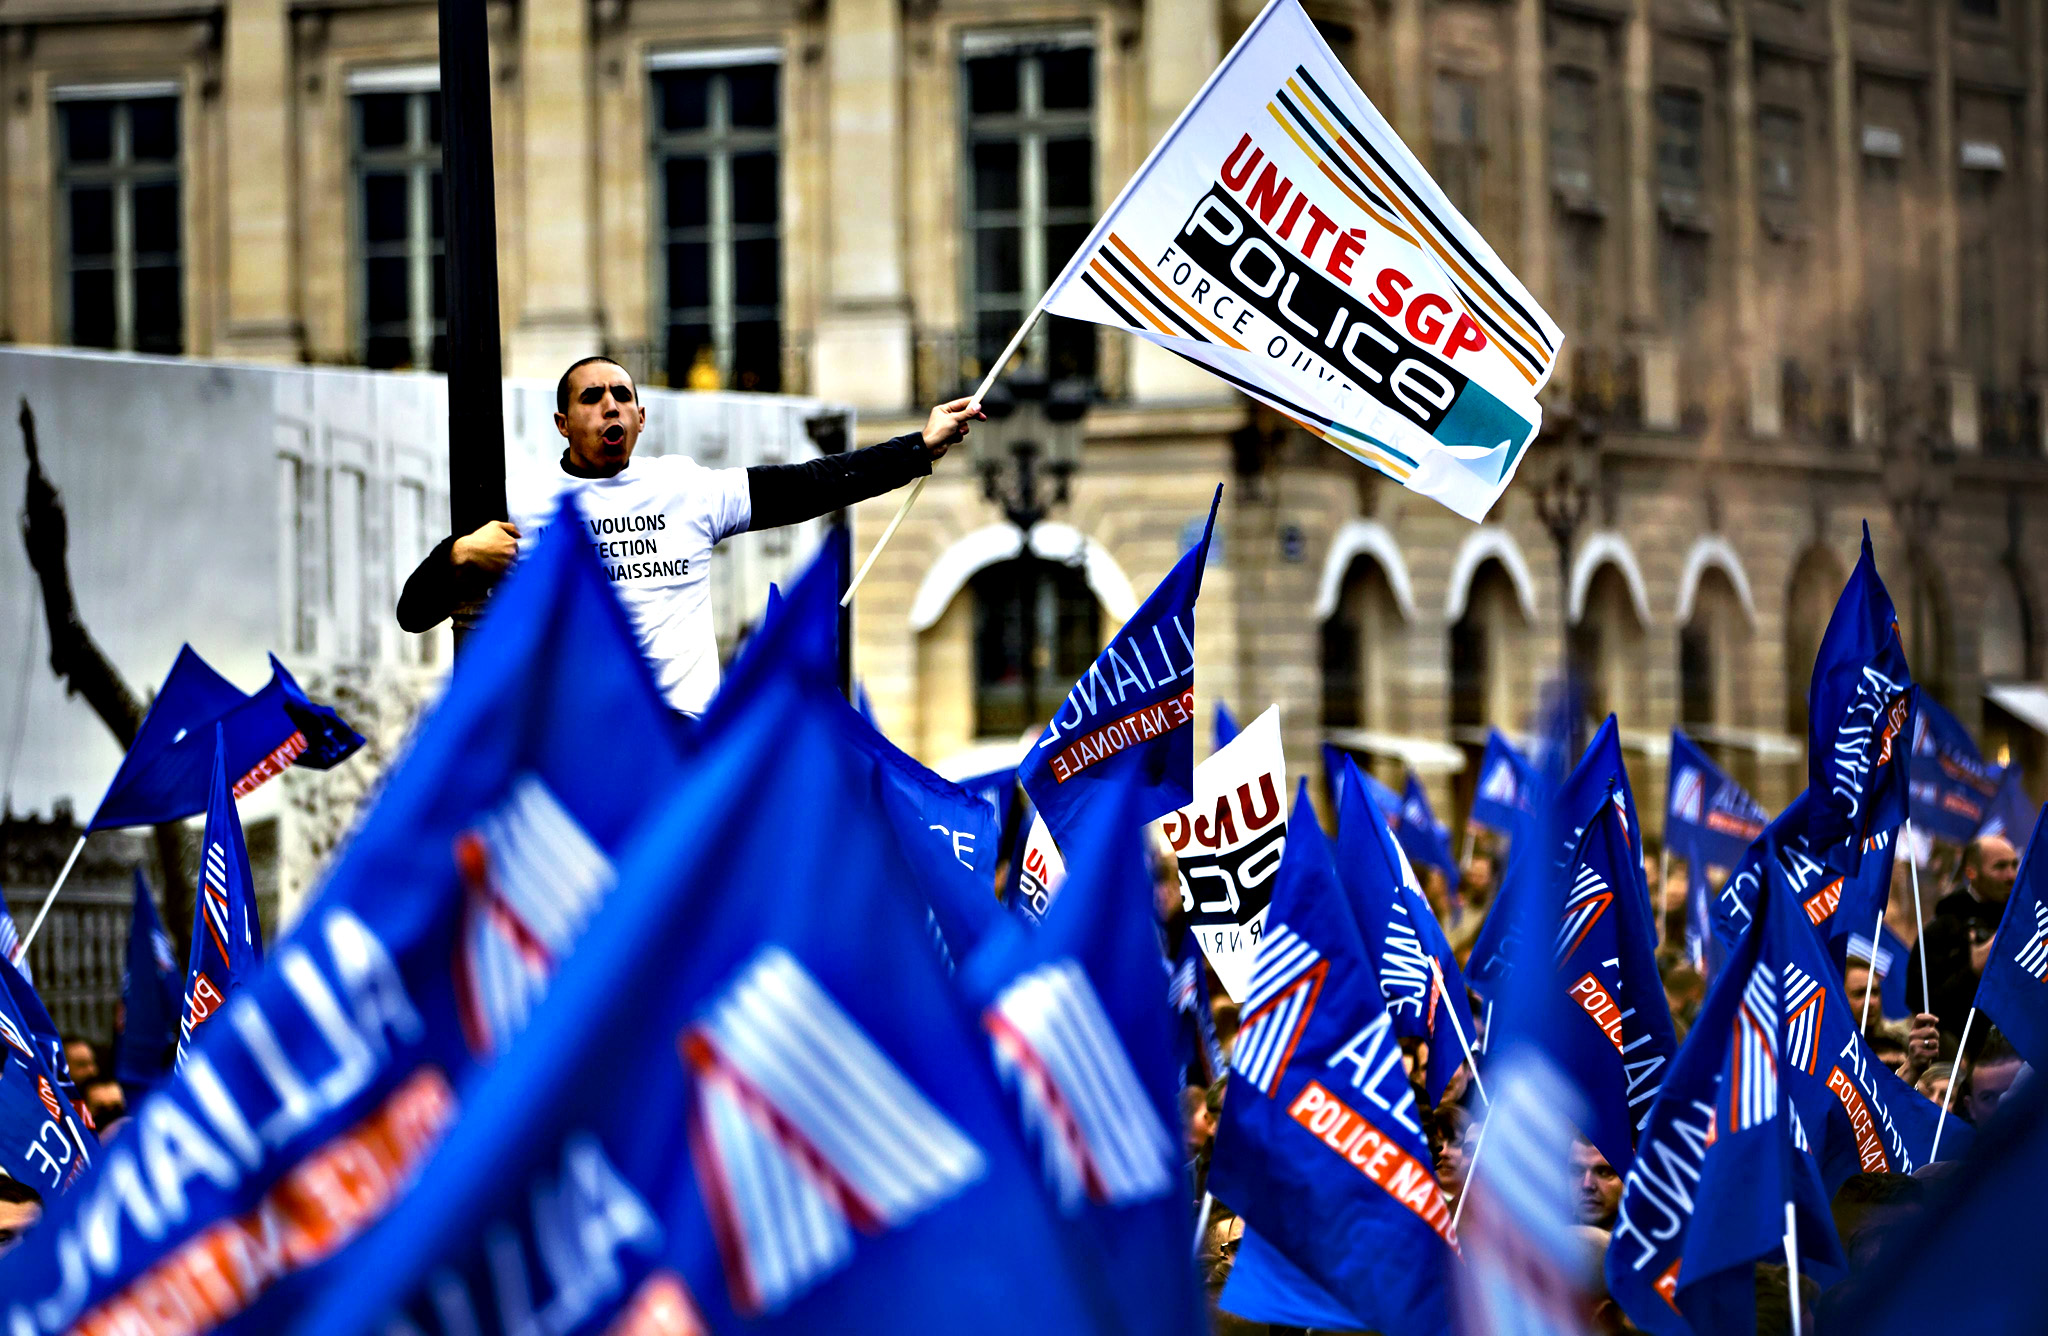 French police officers protest in front of the Ministry of Justice on Place Vendome, during a demonstration calling for more resources and improved security measures in their work environment, in Paris, France, 14 October 2015. The protest is organised just one week after a police officer was seriously wounded in a shoot-out with a gunman who was granted an out-of-jail permit.